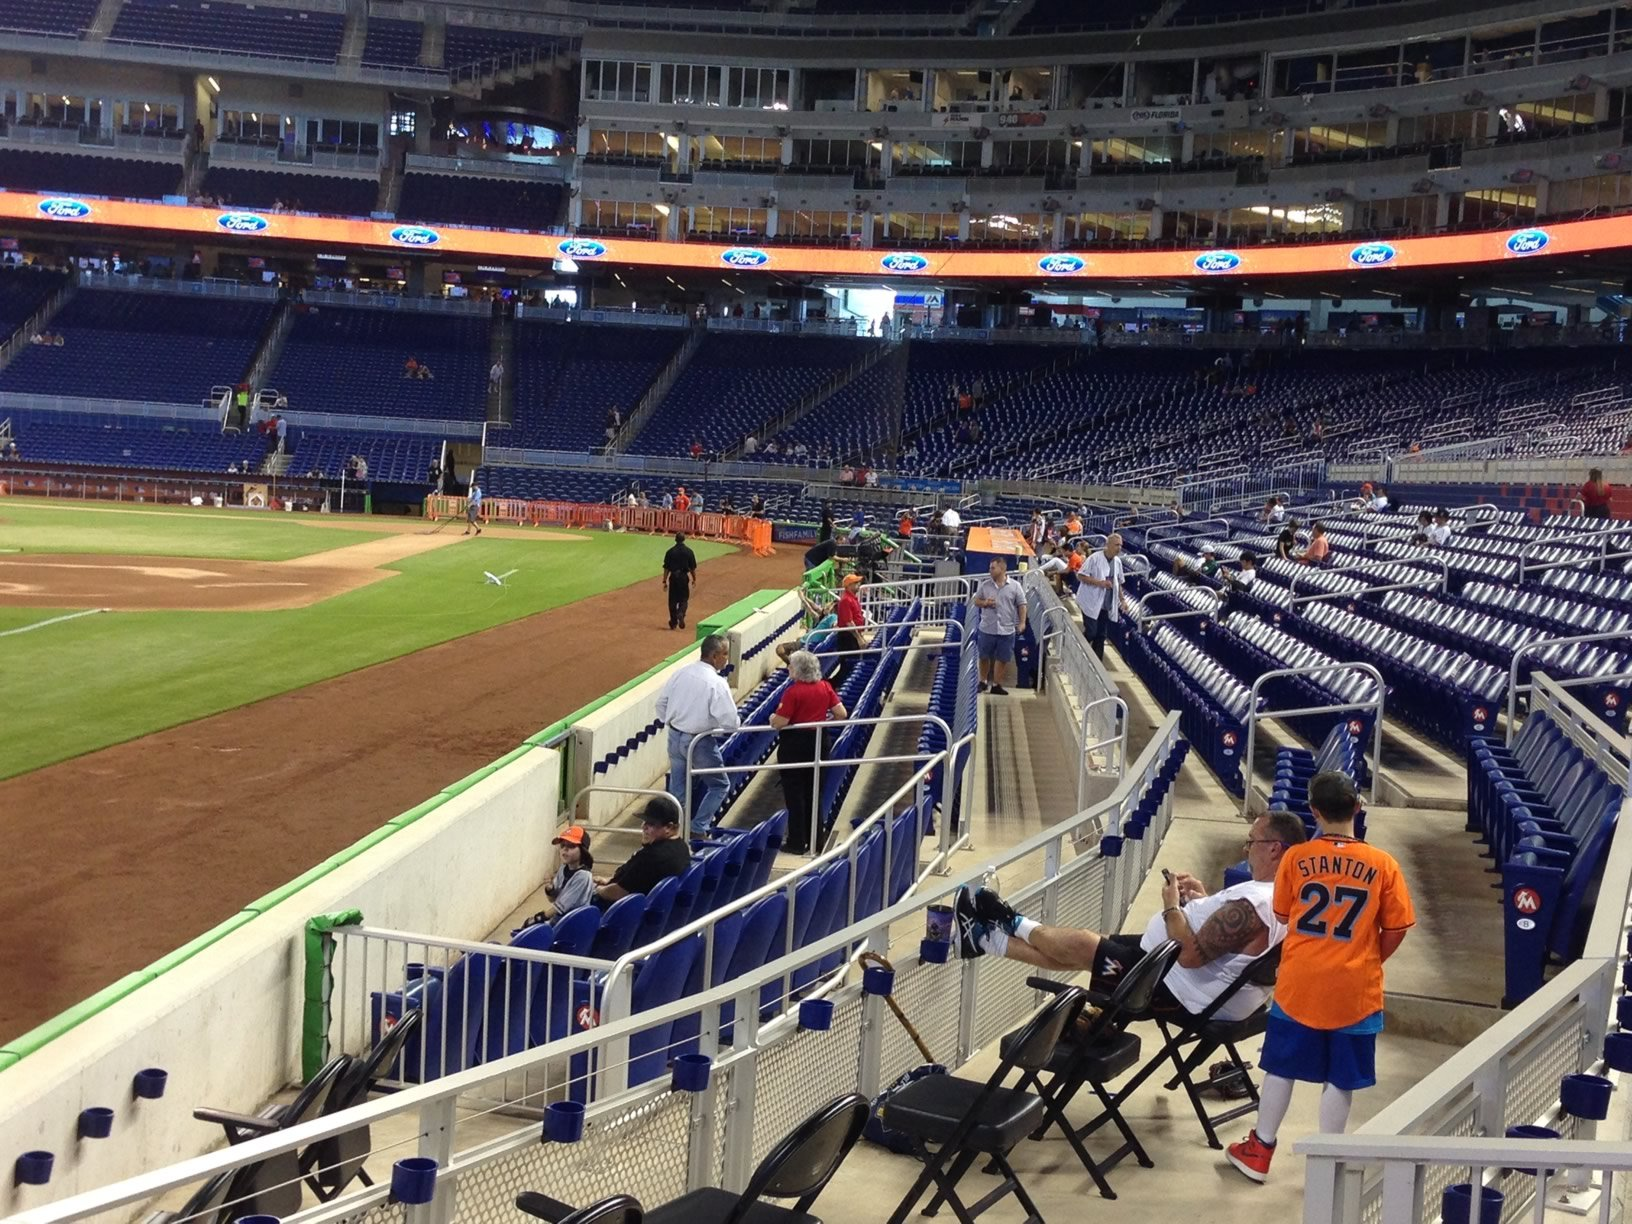 Marlins Park Field Level Sections 9-11